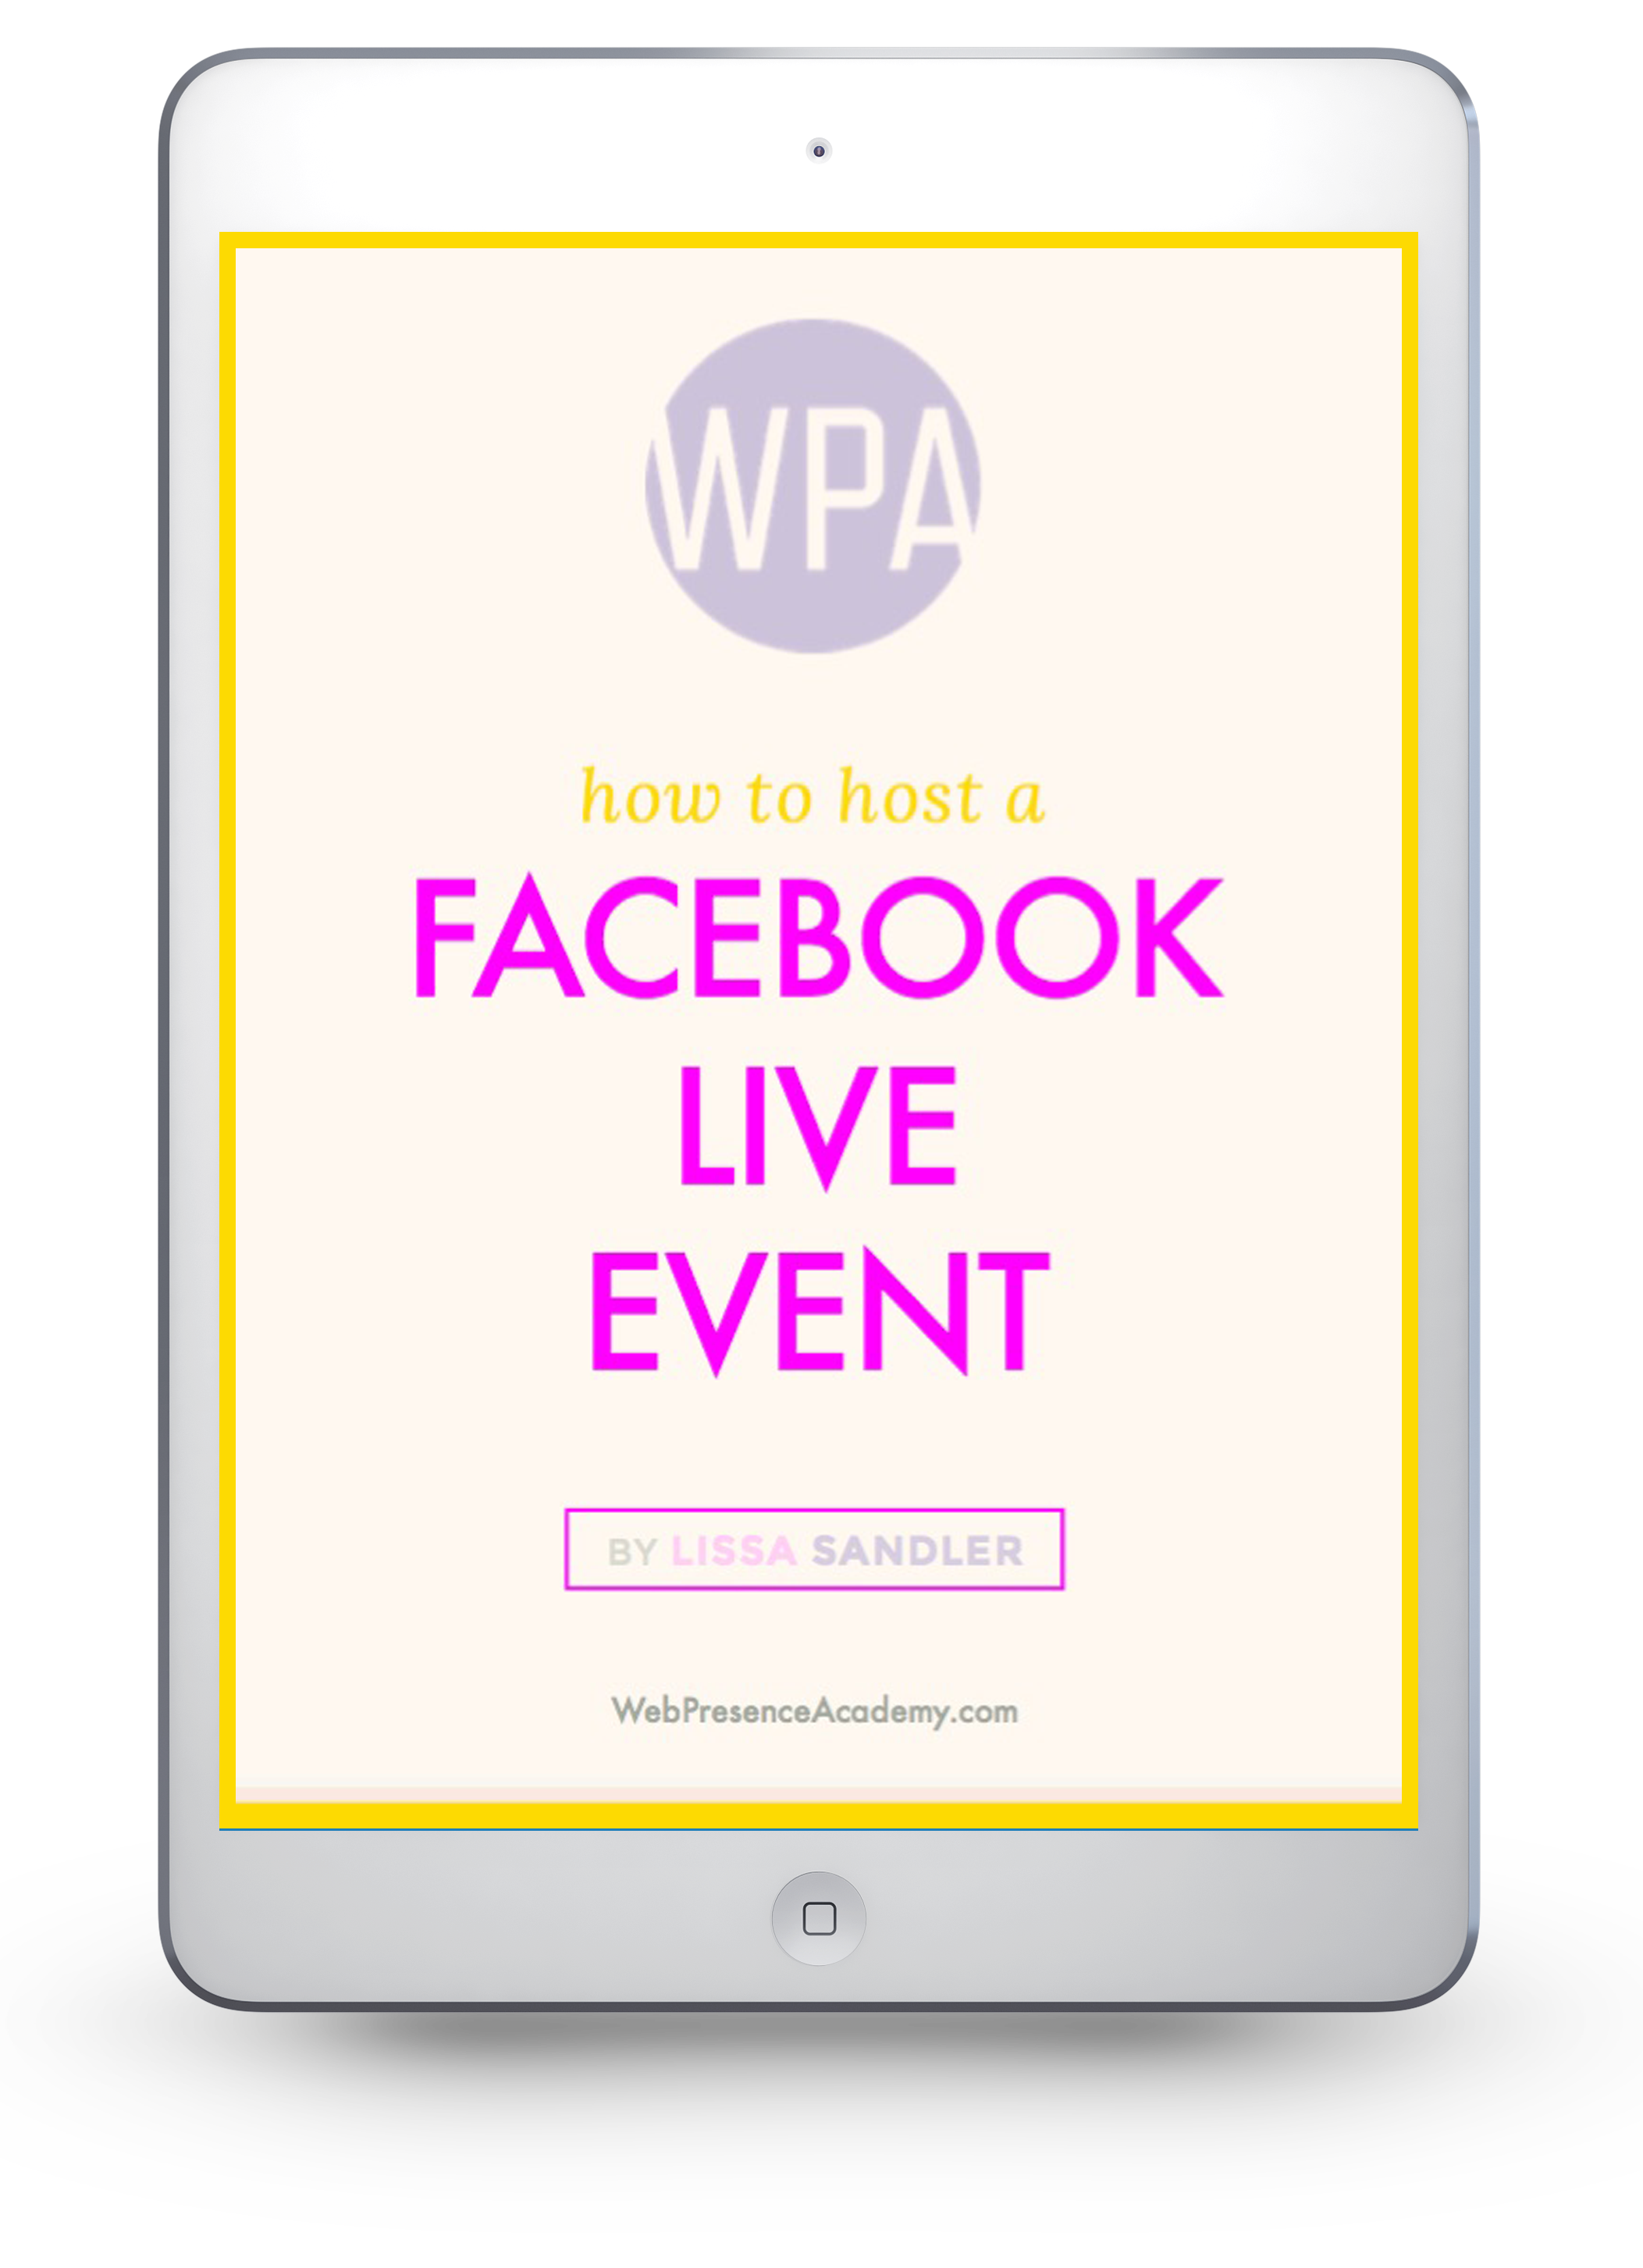 How to Host a Facebook Live Event